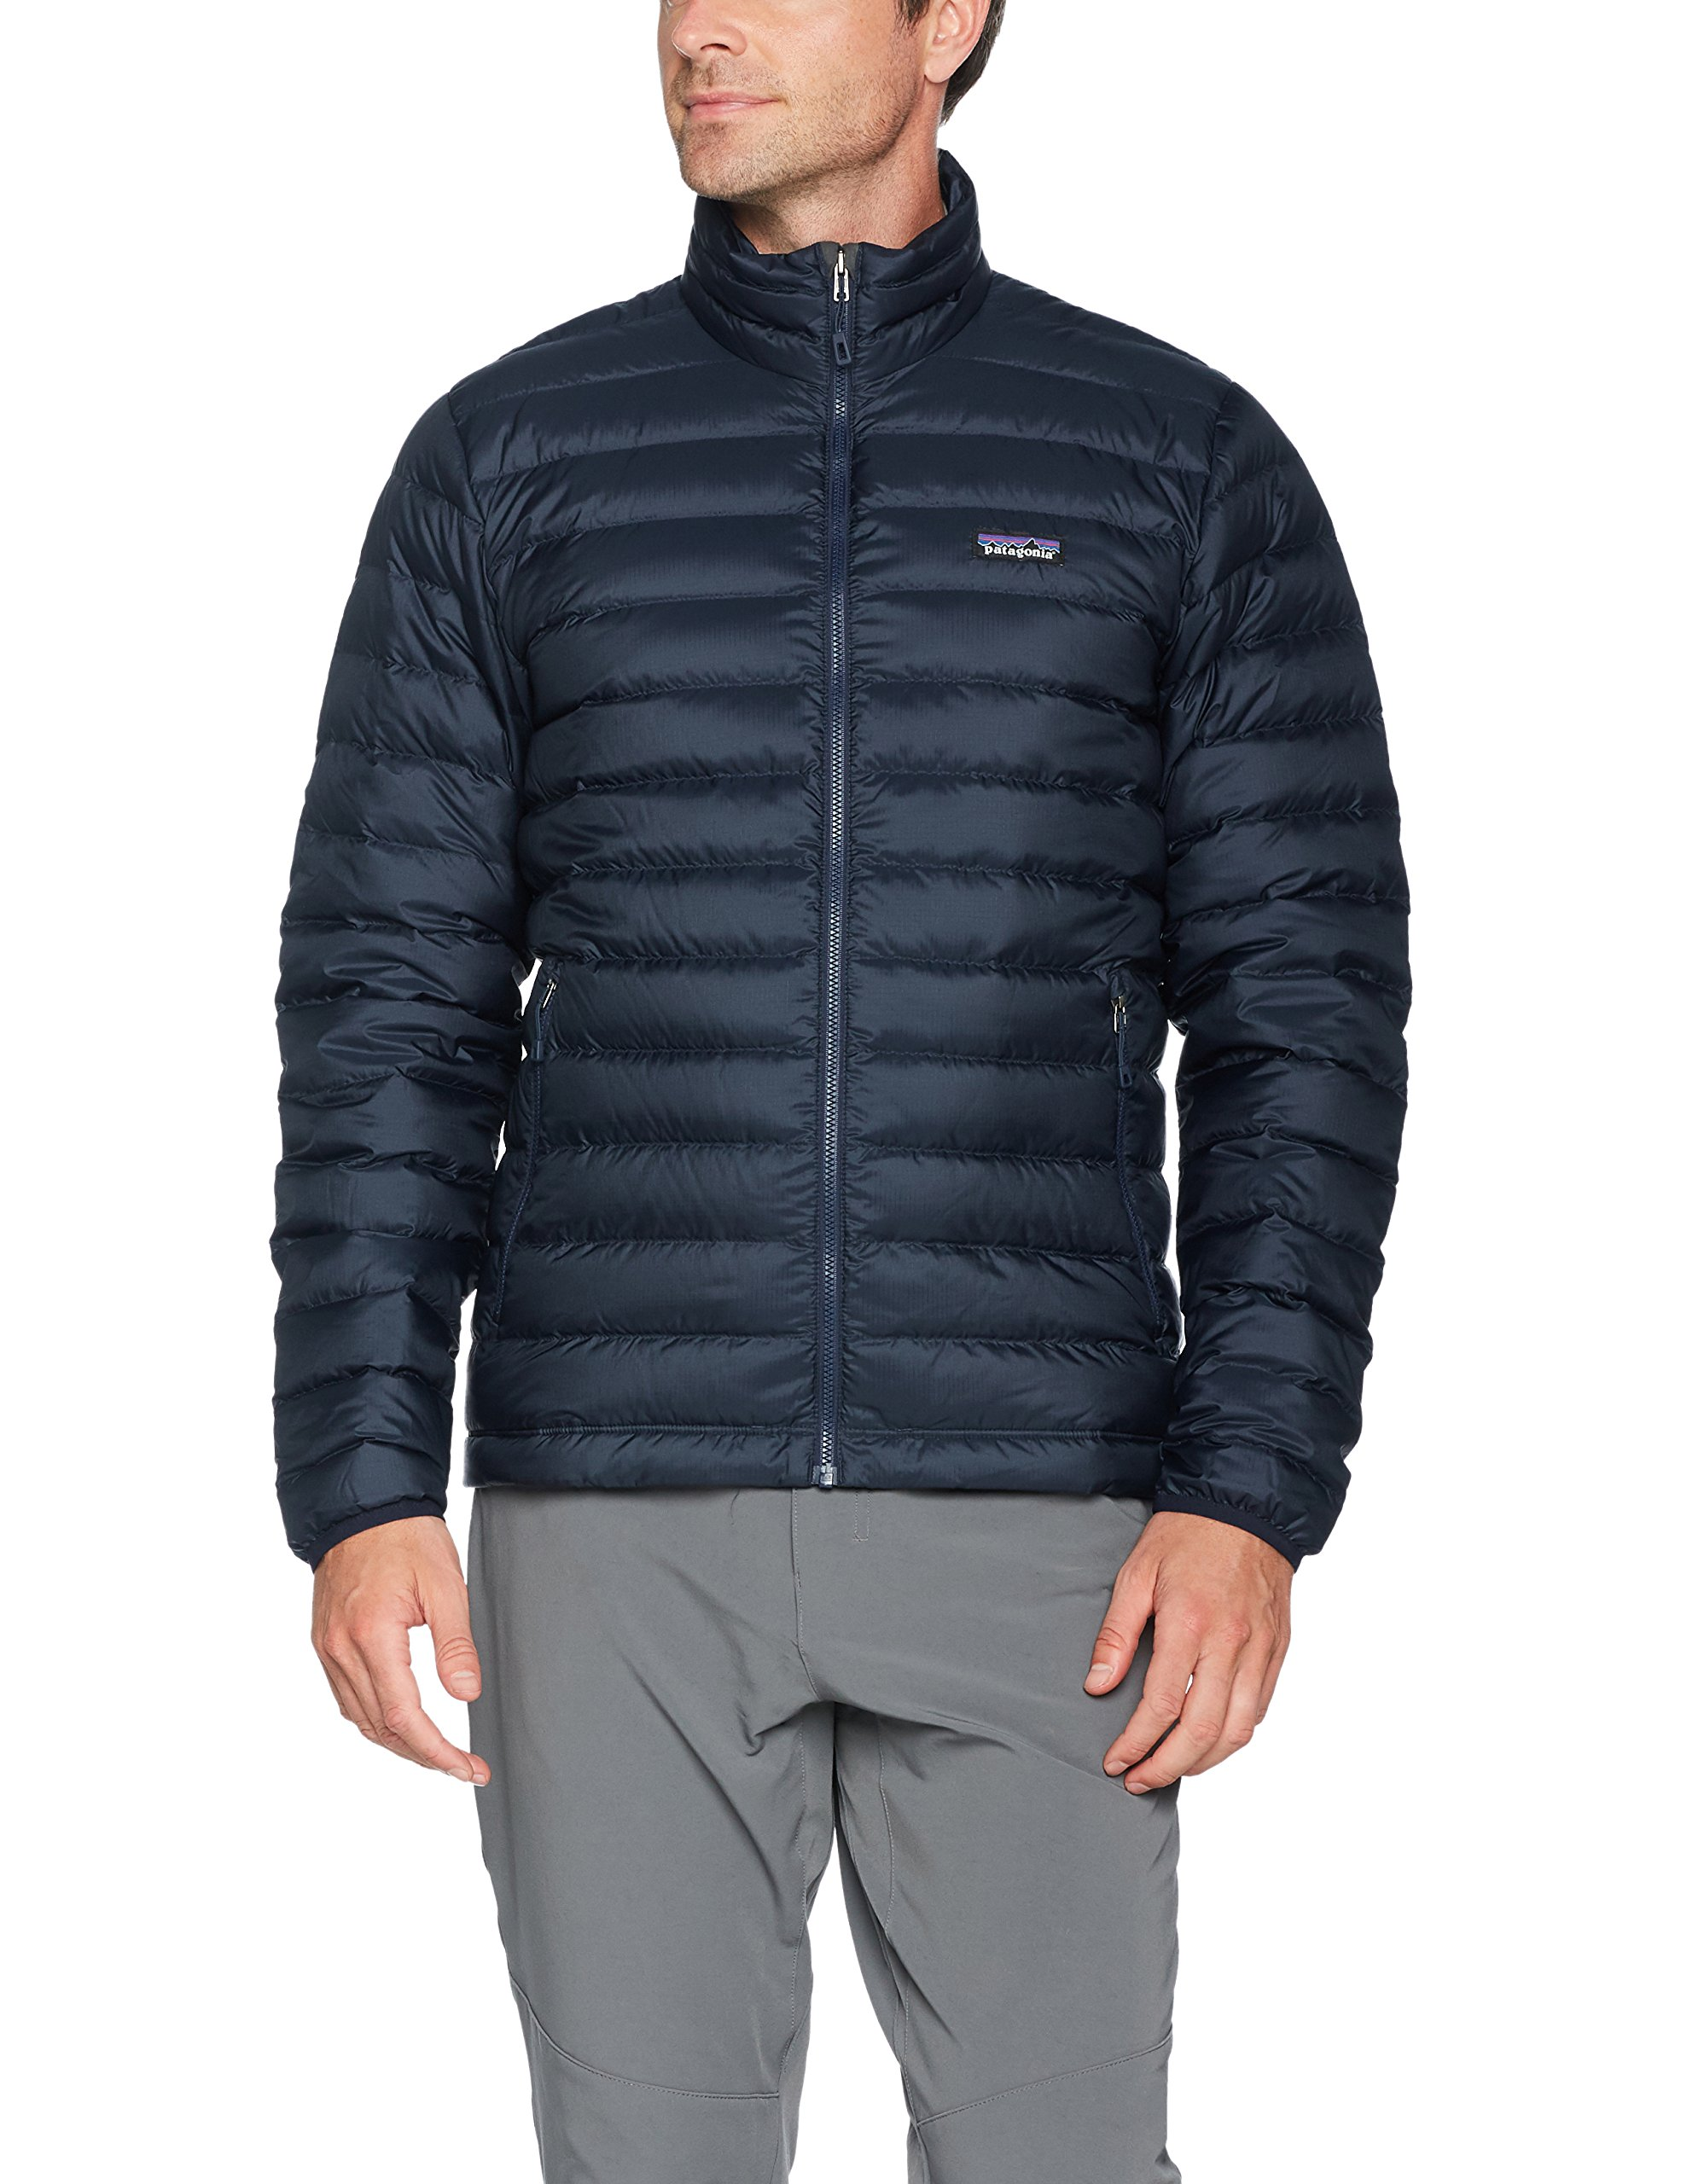 Patagonia Men's Down Sweater Jacket (Large, Navy Blue w/ Navy Blue) by Patagonia